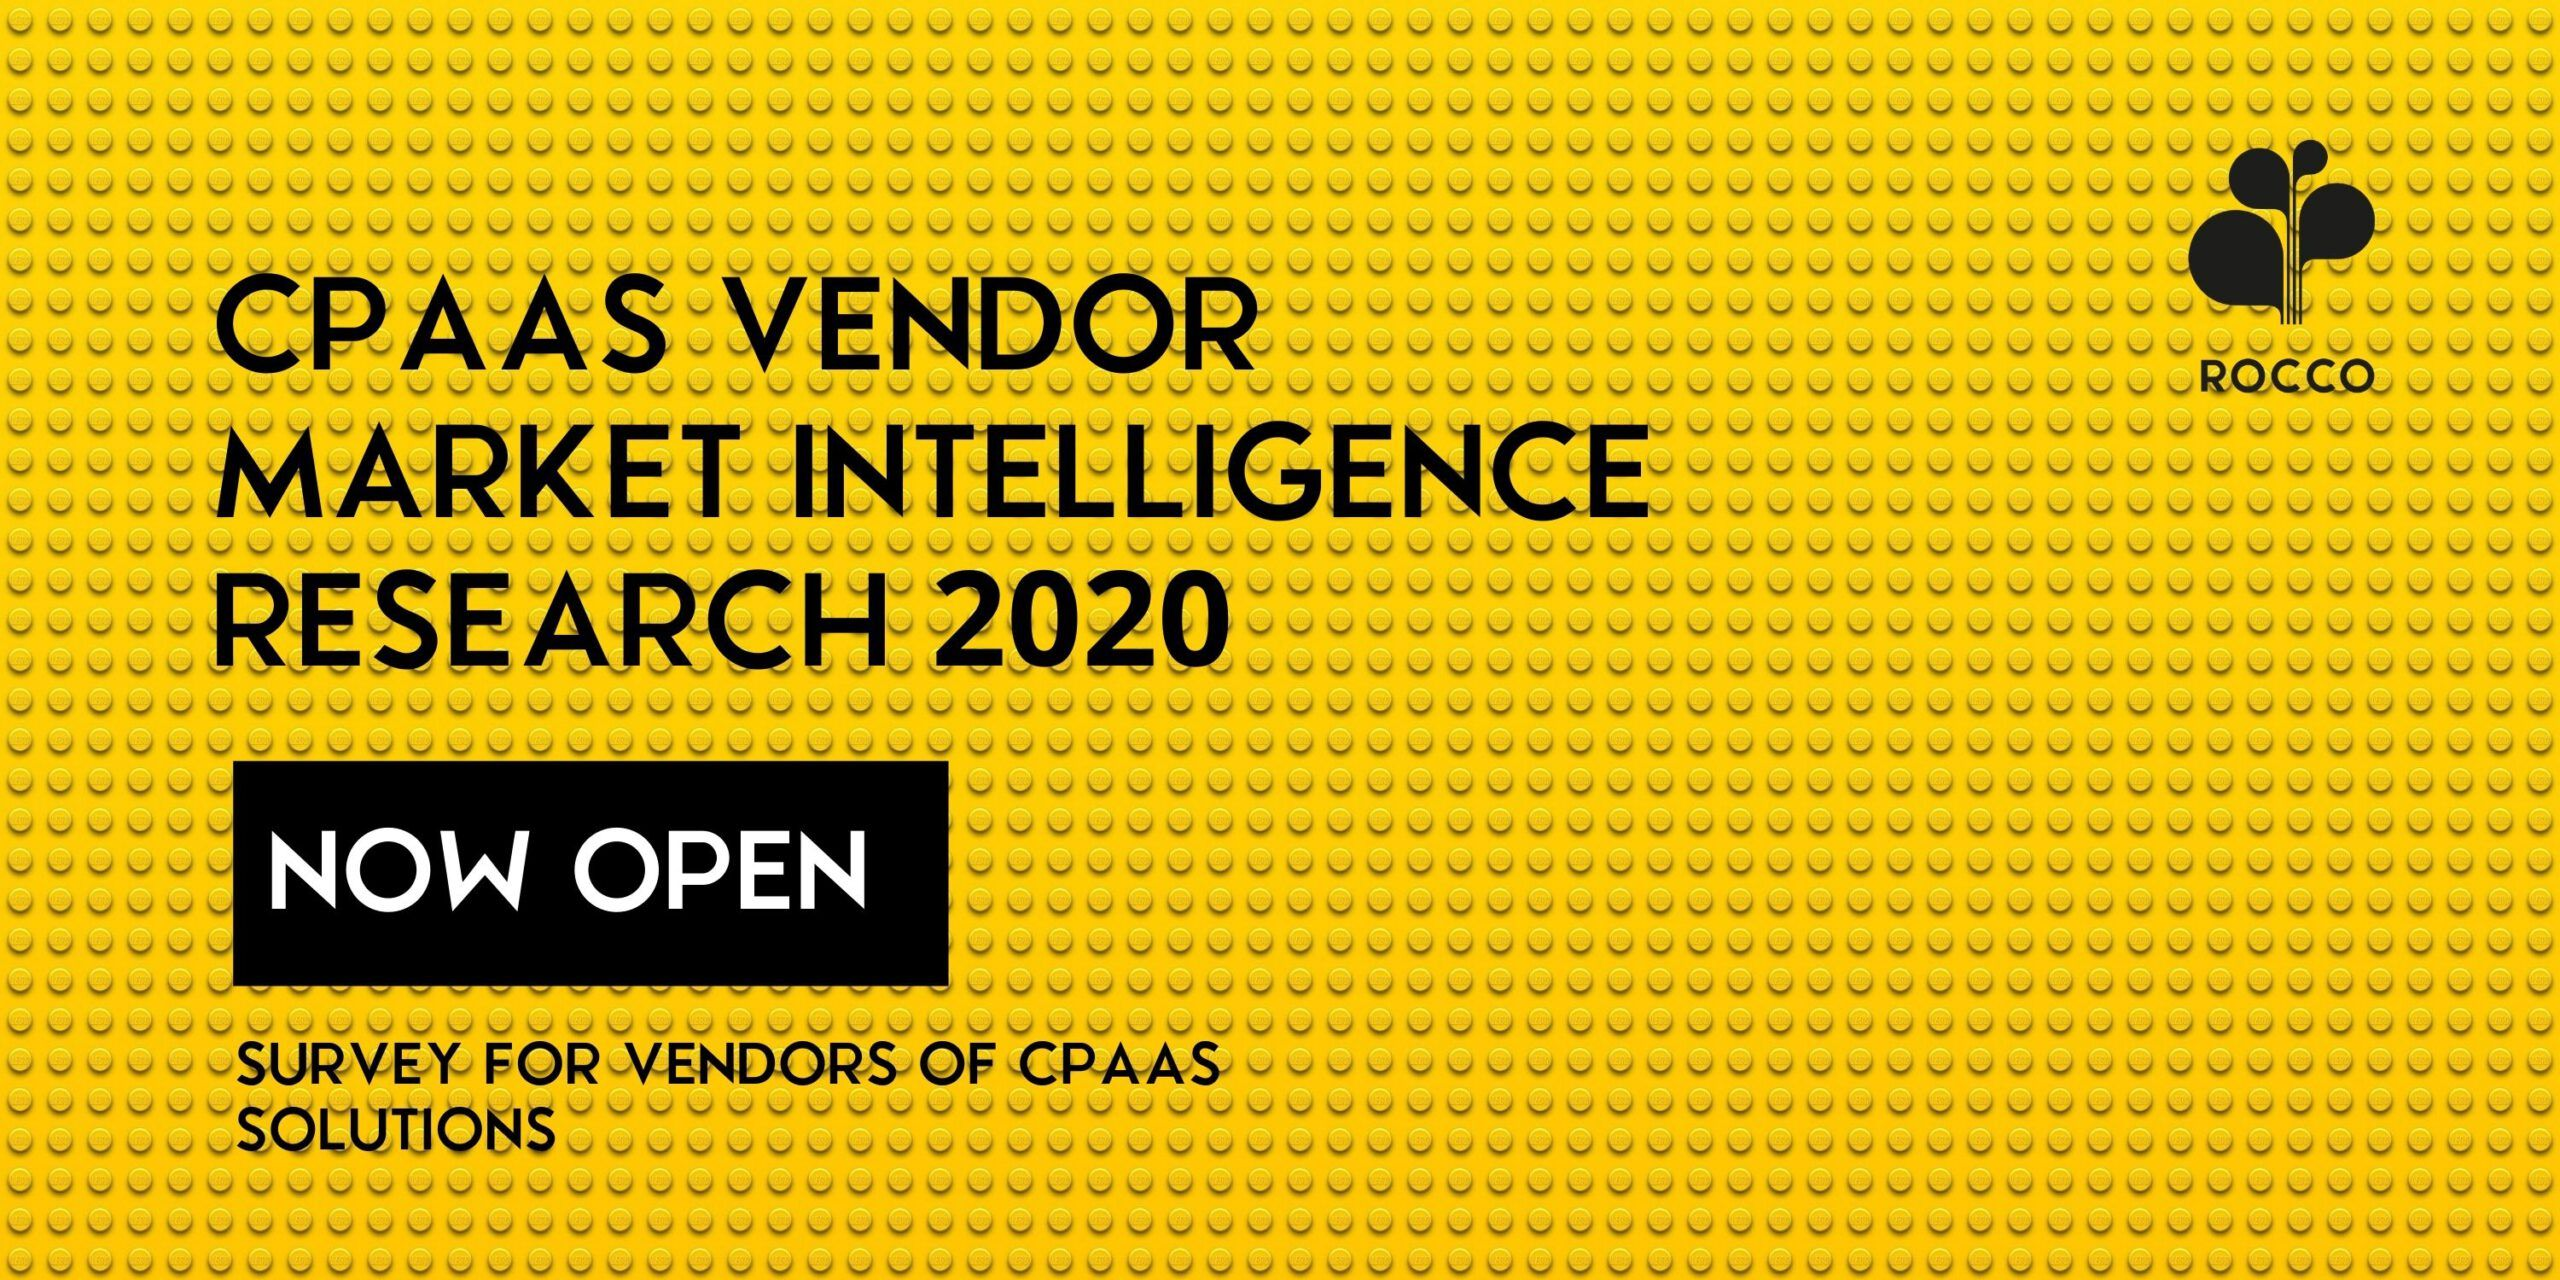 Launch: New CPaaS Vendor Market Intelligence Research starts today